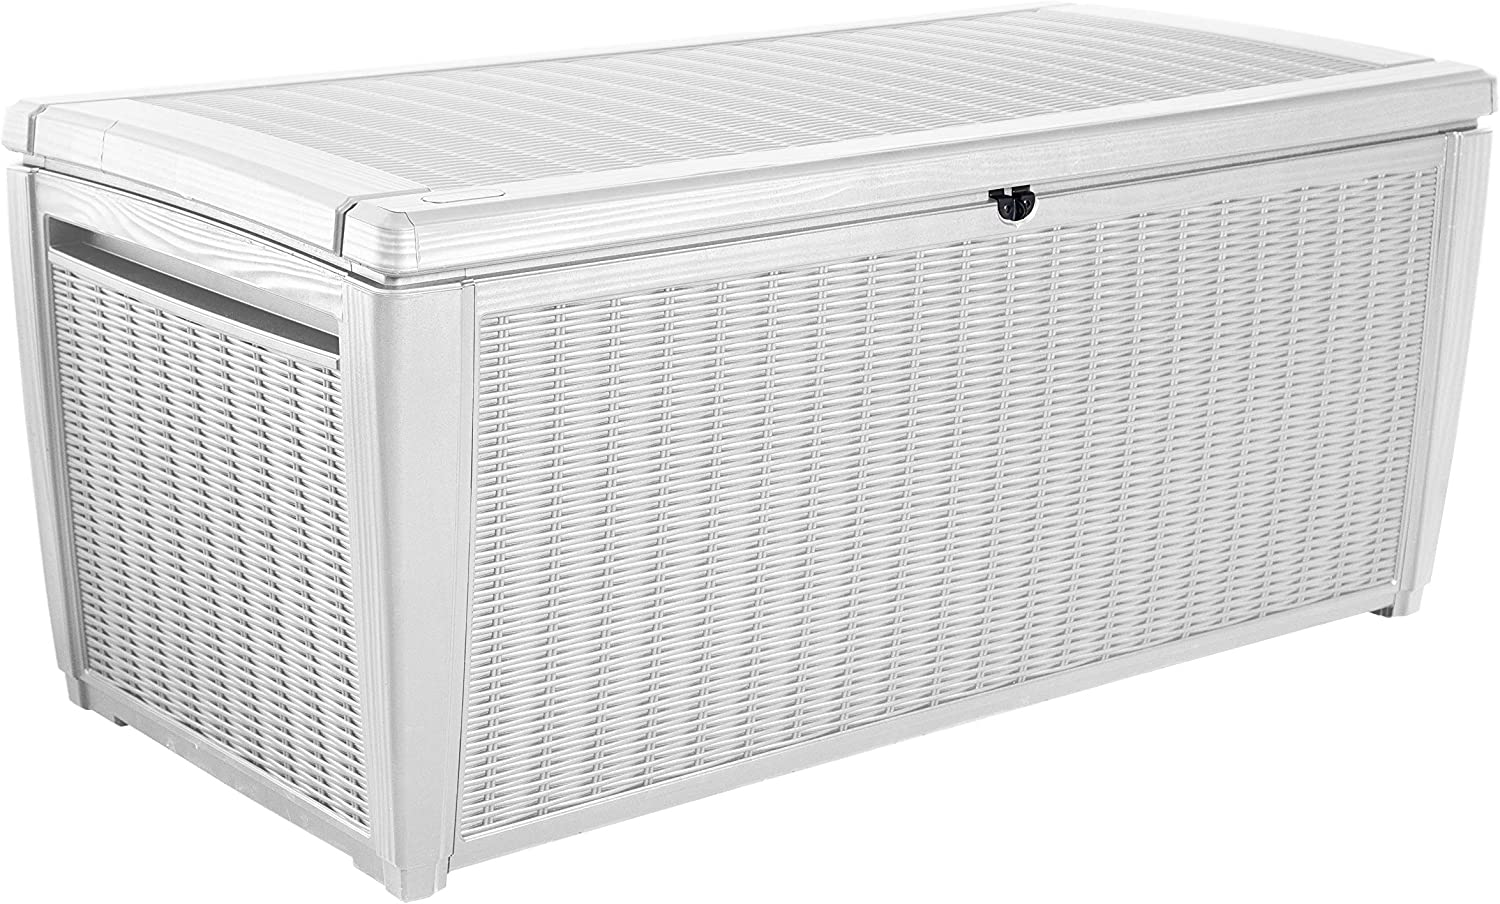 Keter - Arcón exterior Pool Box XXL, Capacidad 511 litros, Color blanco: Amazon.es: Jardín